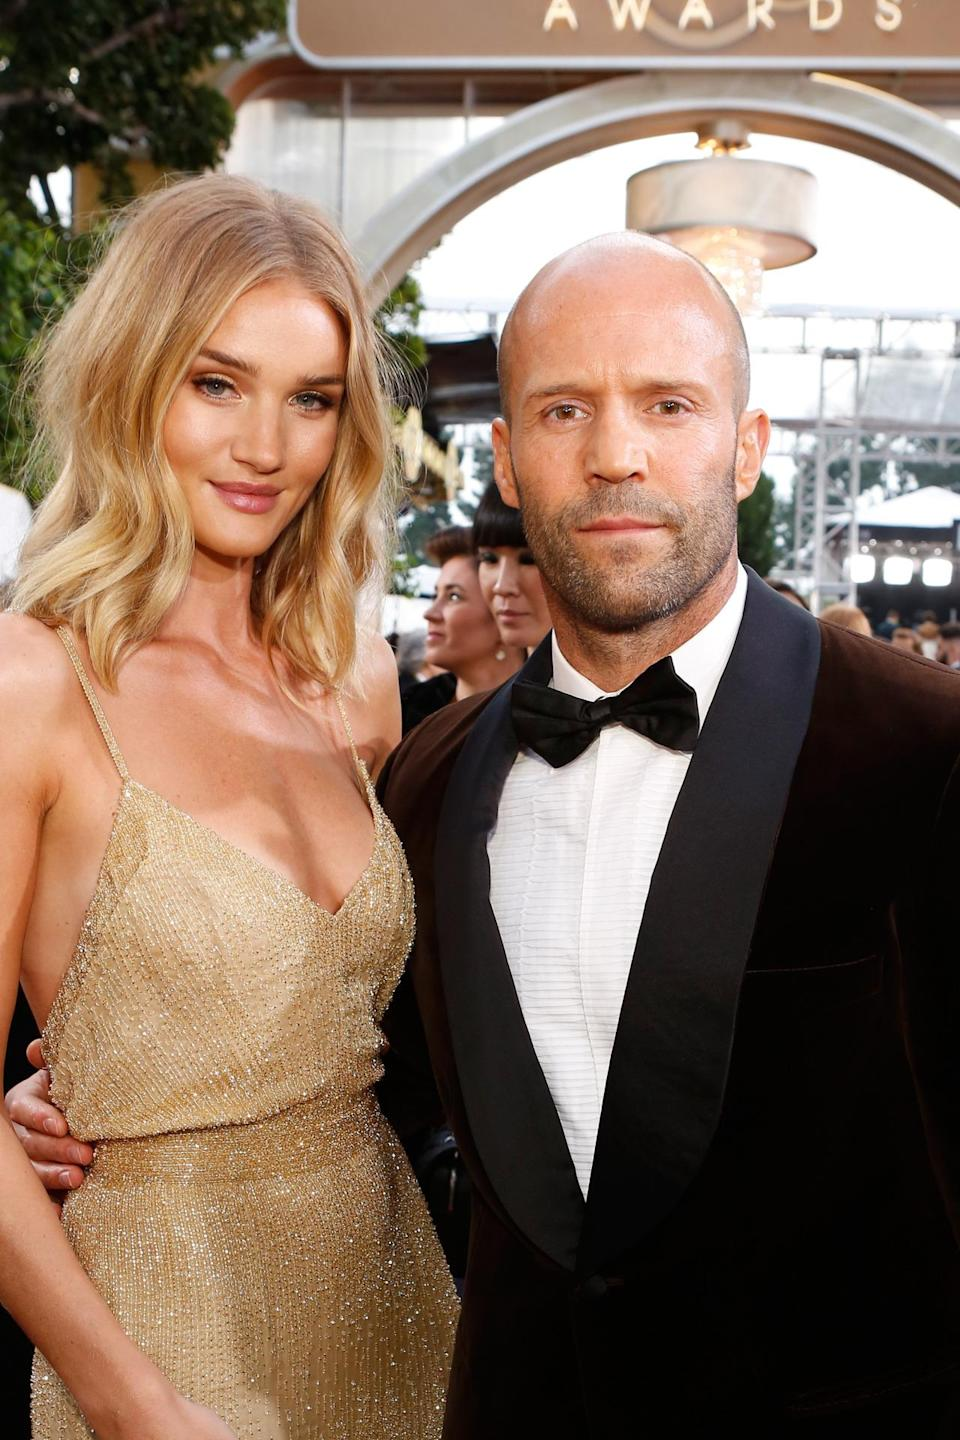 """<p>Models and actors are a common love match, and the <i>Spy </i>actor and the Victoria's Secret Angel just announced their engagement. Of the six-year relationship, Huntington-Whiteley told <i>Self </i>magazine last spring: """"We're best mates. He makes me laugh every day."""" <i>(Photo: Getty Images)</i></p><p><i><br></i></p>"""